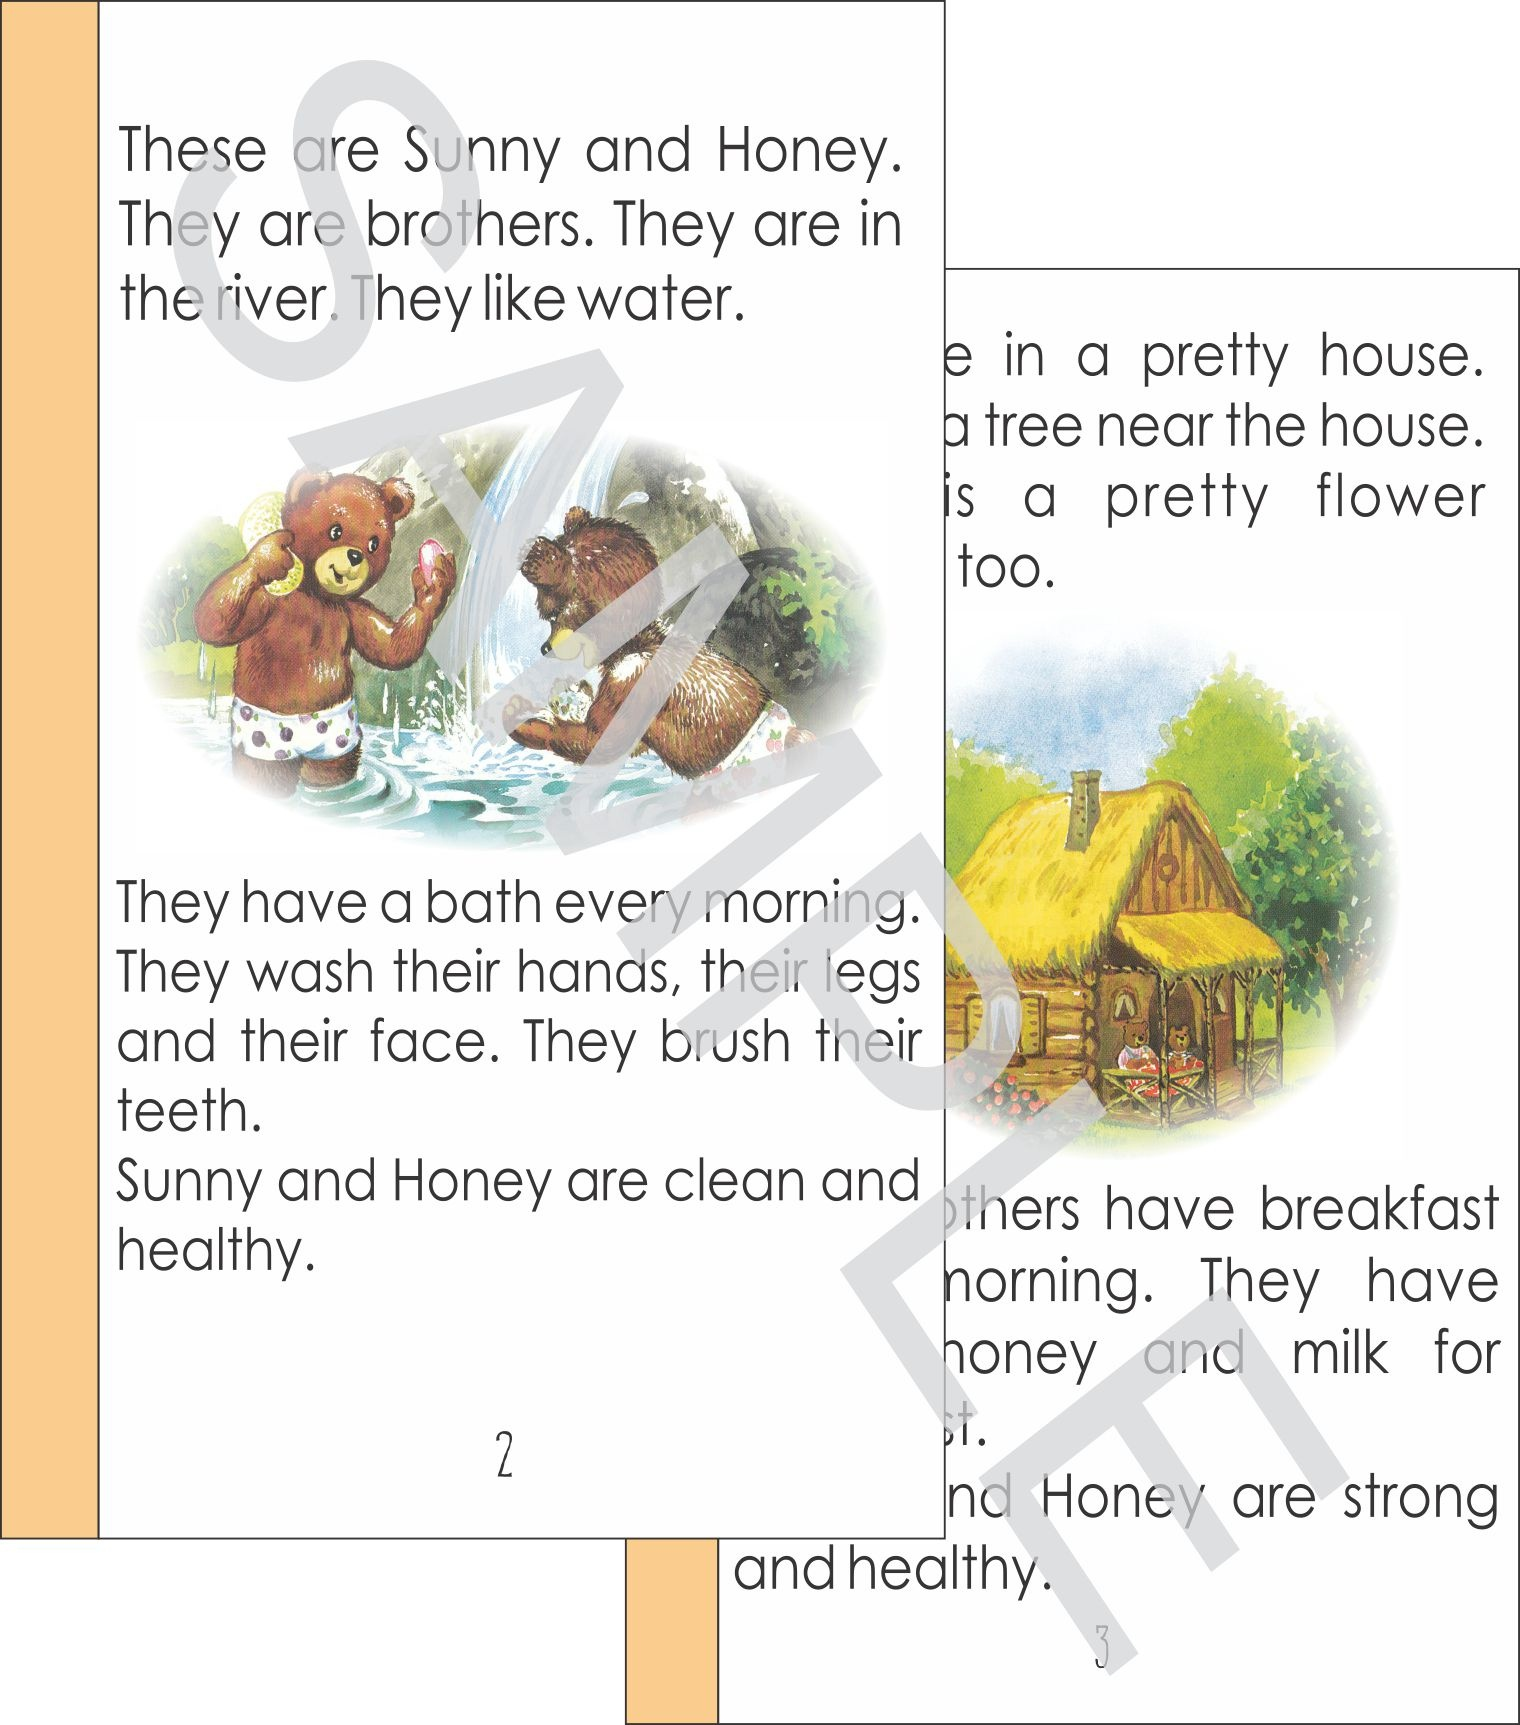 Collection Of Free Printable Story Books For Grade 1 (31+ Images In - Free Printable Story Books For Grade 1